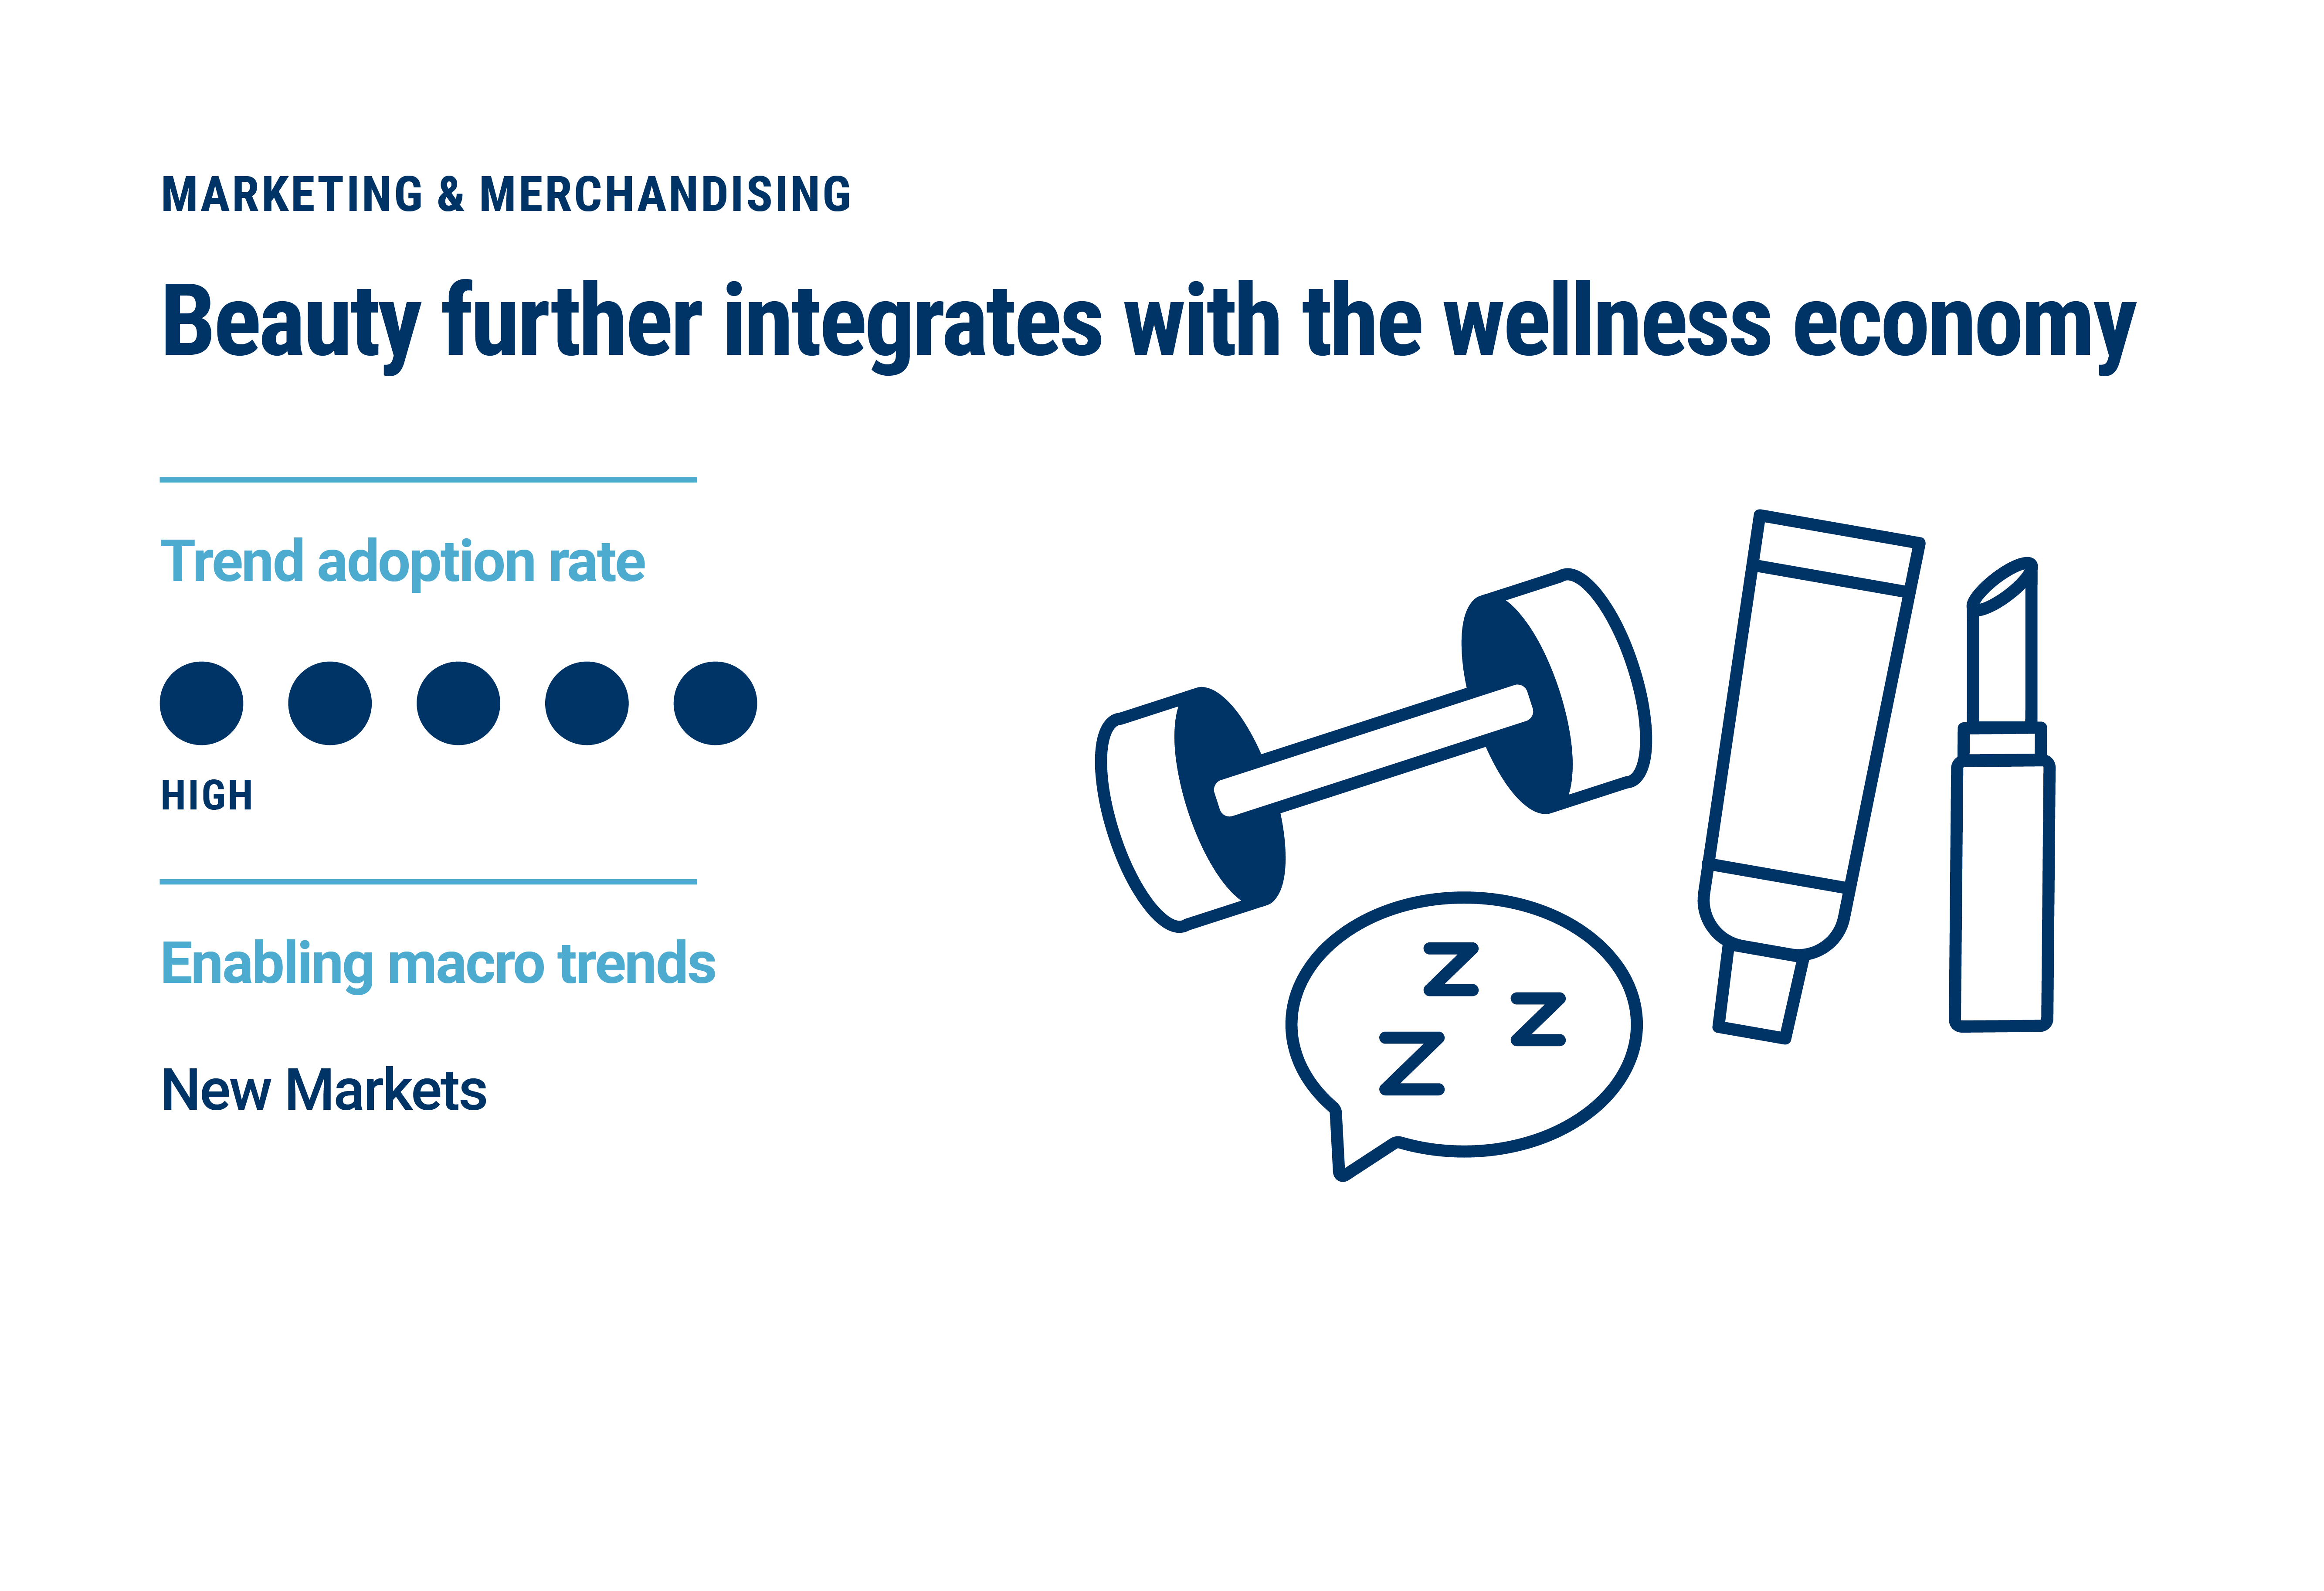 A trend that's been widely adopted is beauty further integrate with the wellness economy